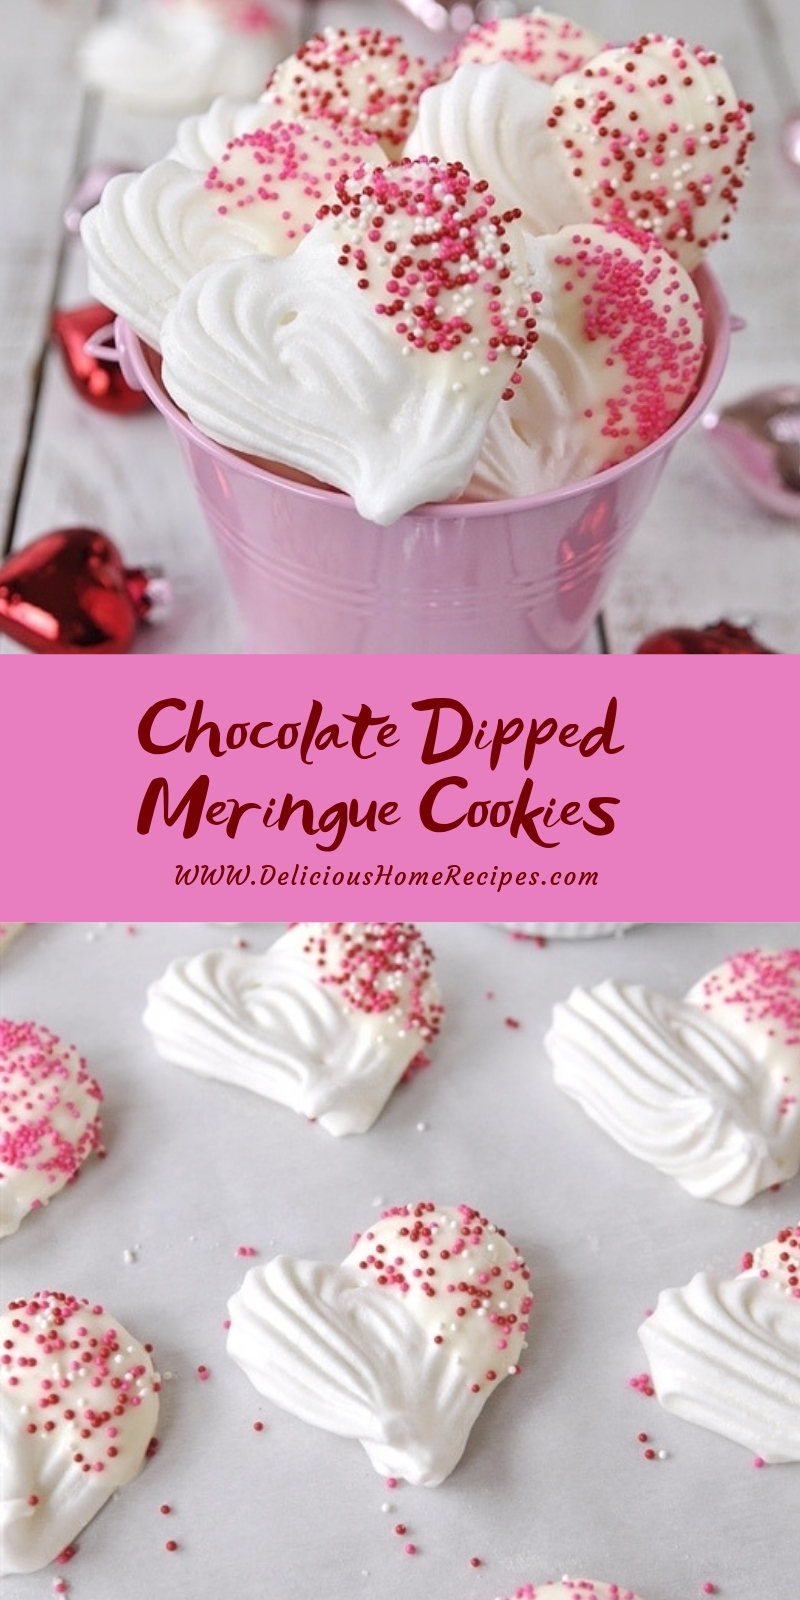 Chocolate Dipped Meringue Cookies #valentine #dessert